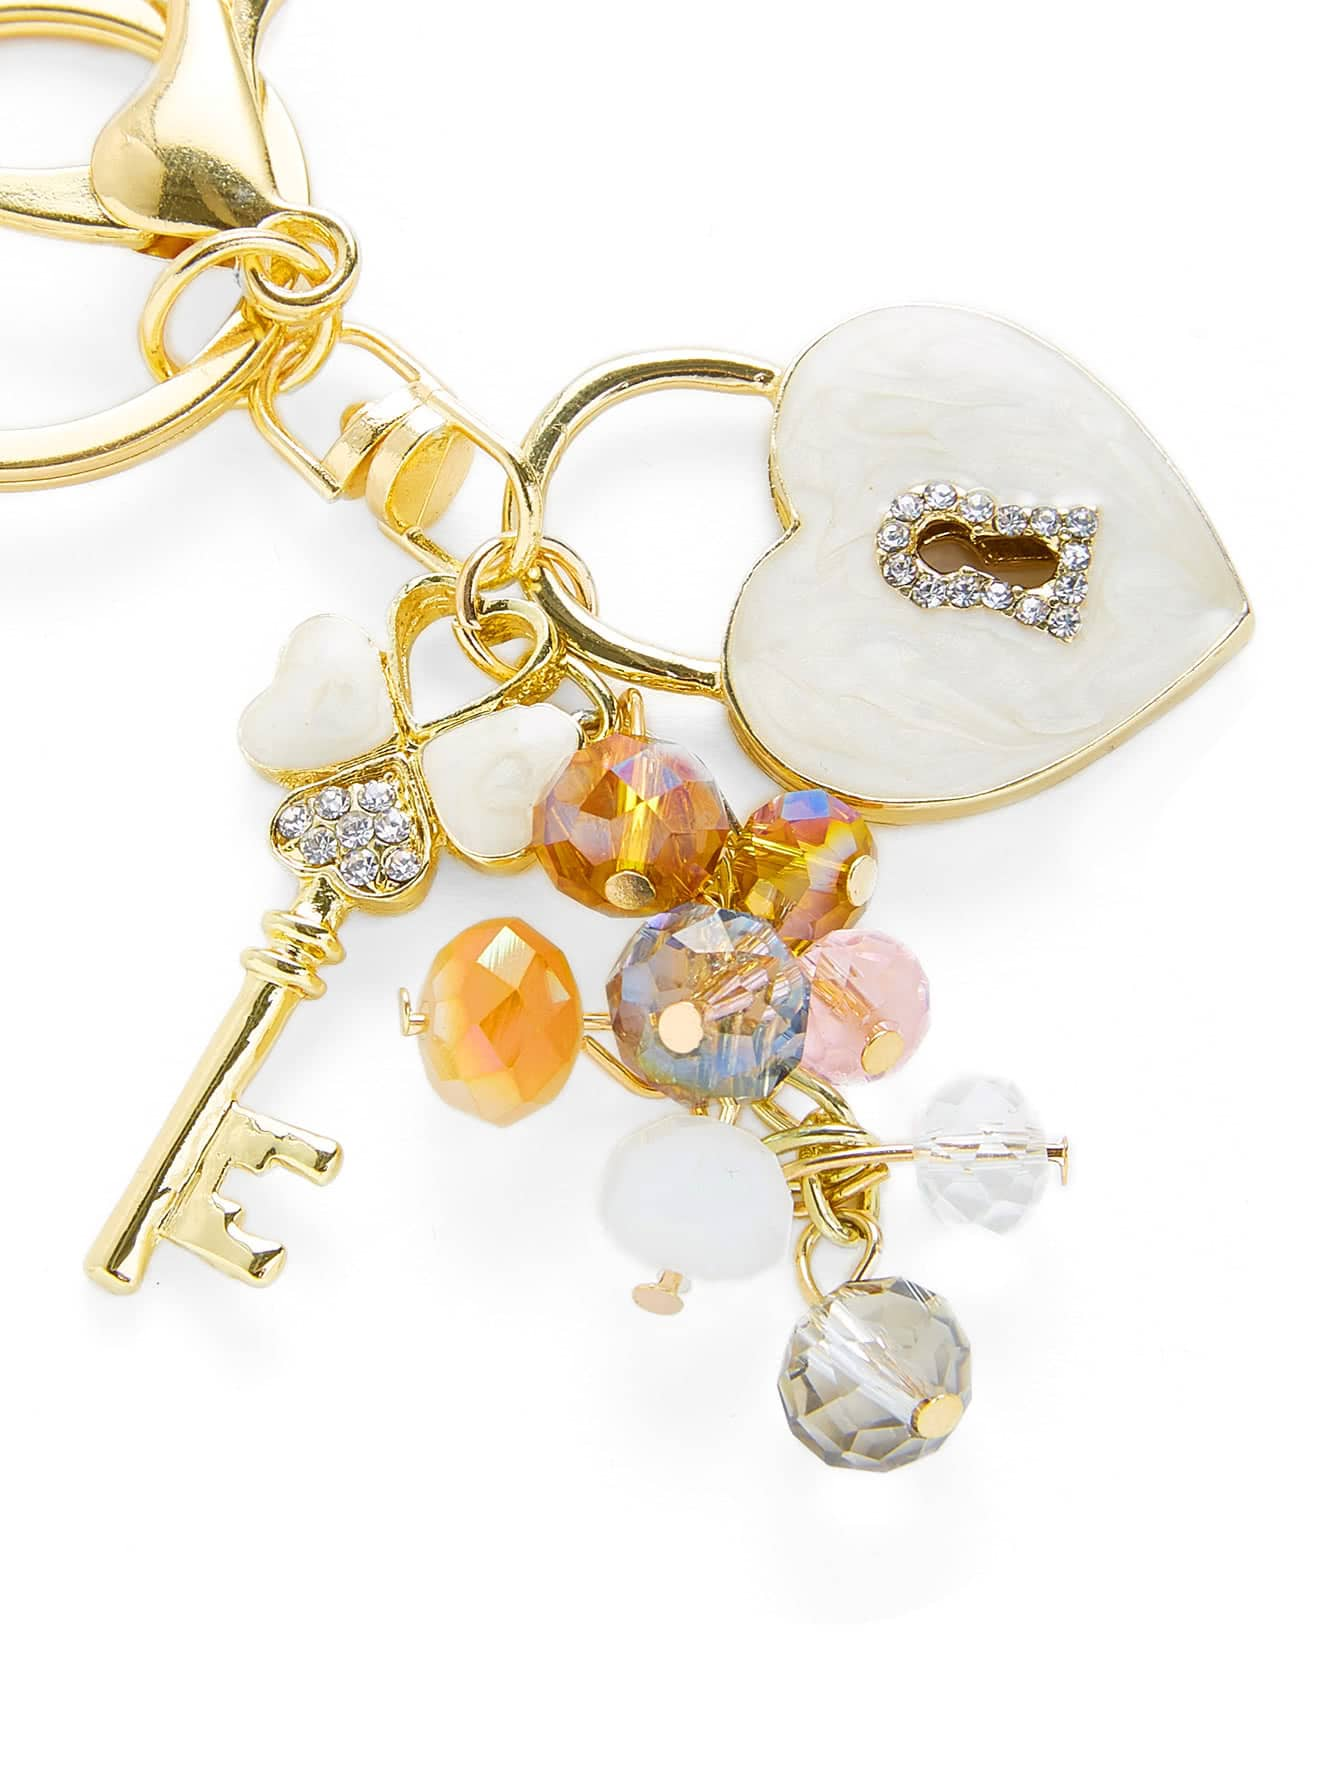 Heart & Key Design Keychain With Crystal puzzle heart design keychain set 2pcs